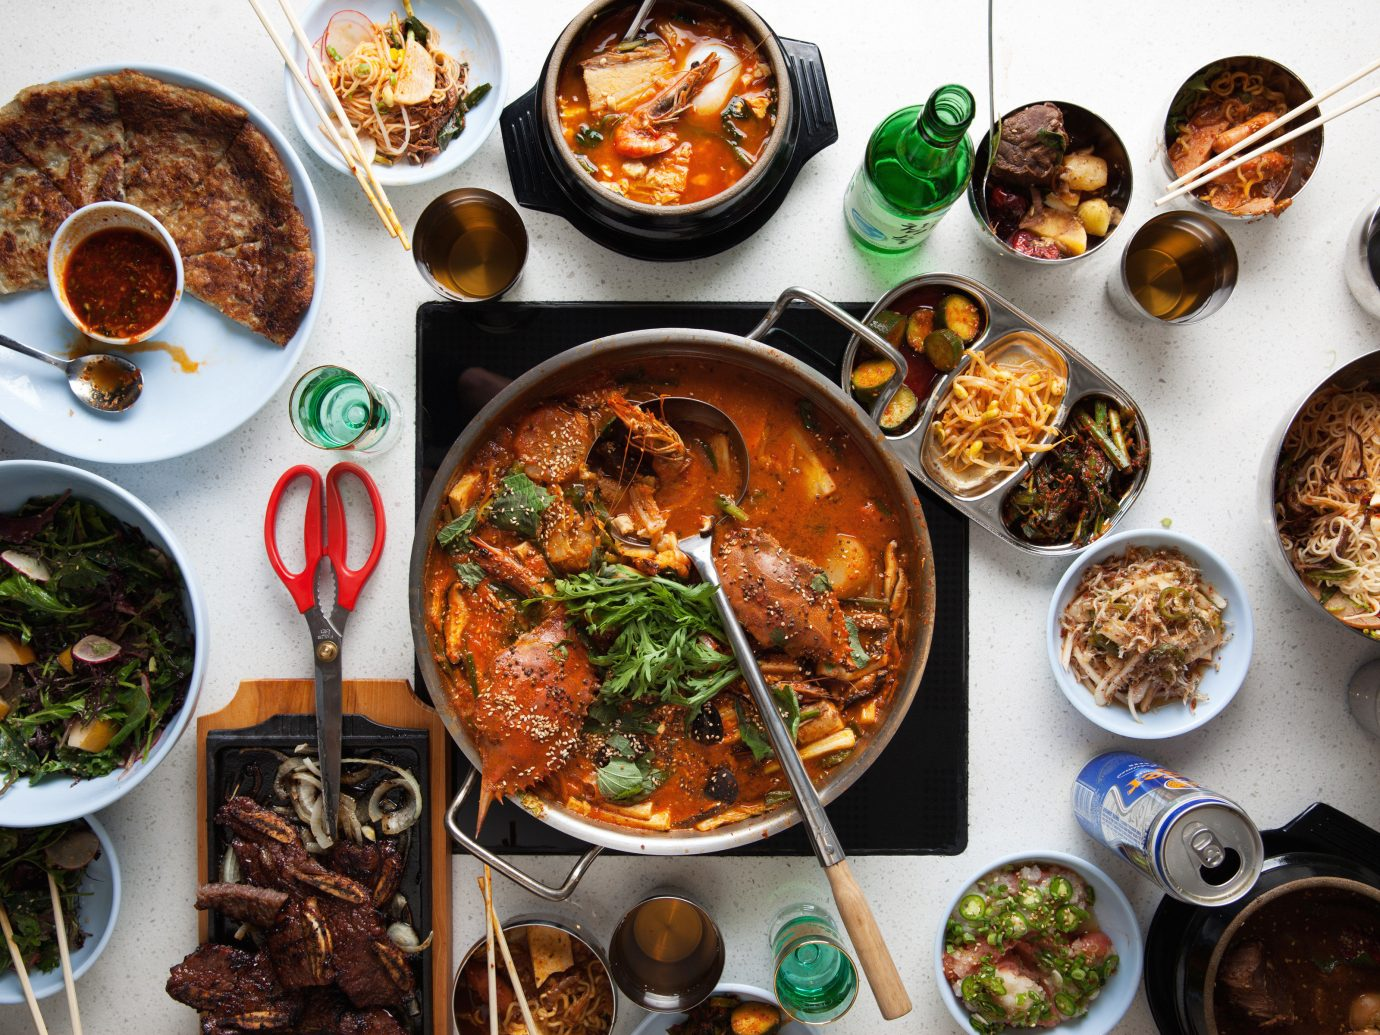 Bar Dining Drink Eat Luxury Modern food plate dish meal different cuisine asian food supper chinese food bunch lunch various several meat arranged variety